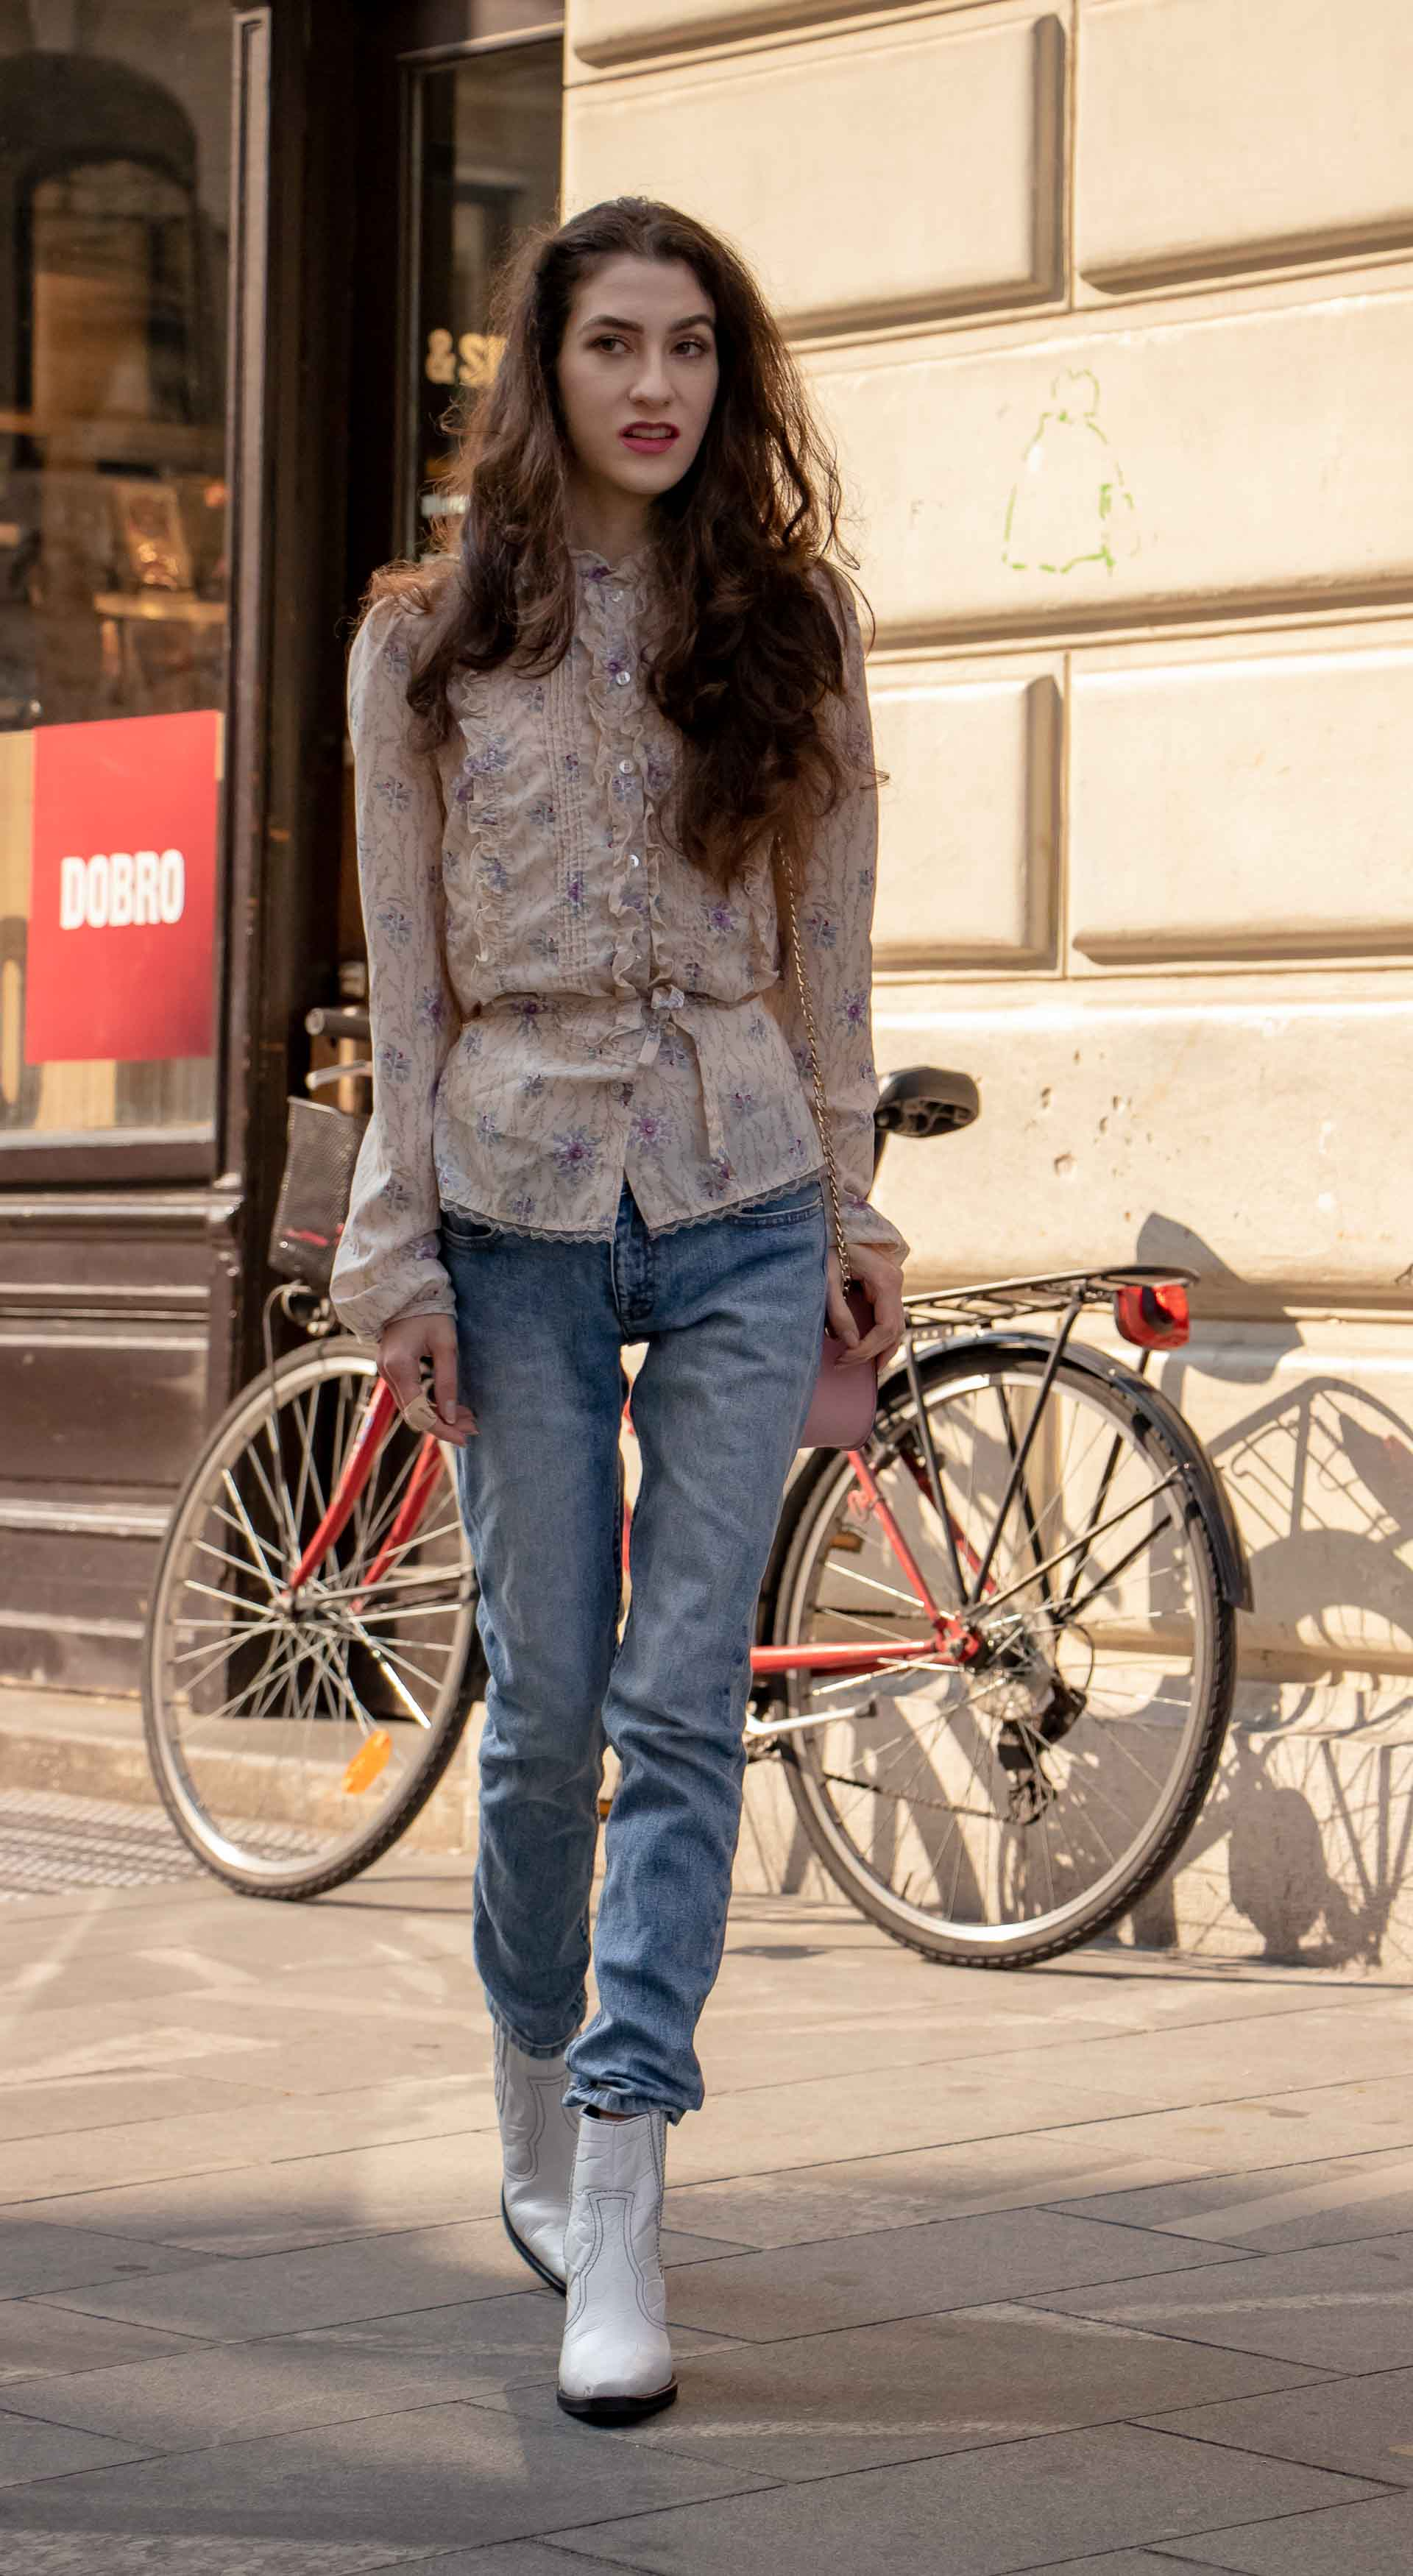 Beautiful Slovenian Fashion Blogger Veronika Lipar of Brunette from Wall dressed in floral long sleeved Prairie blouse, A.P.C. blue jeans on the street in autumn in Ljubljana